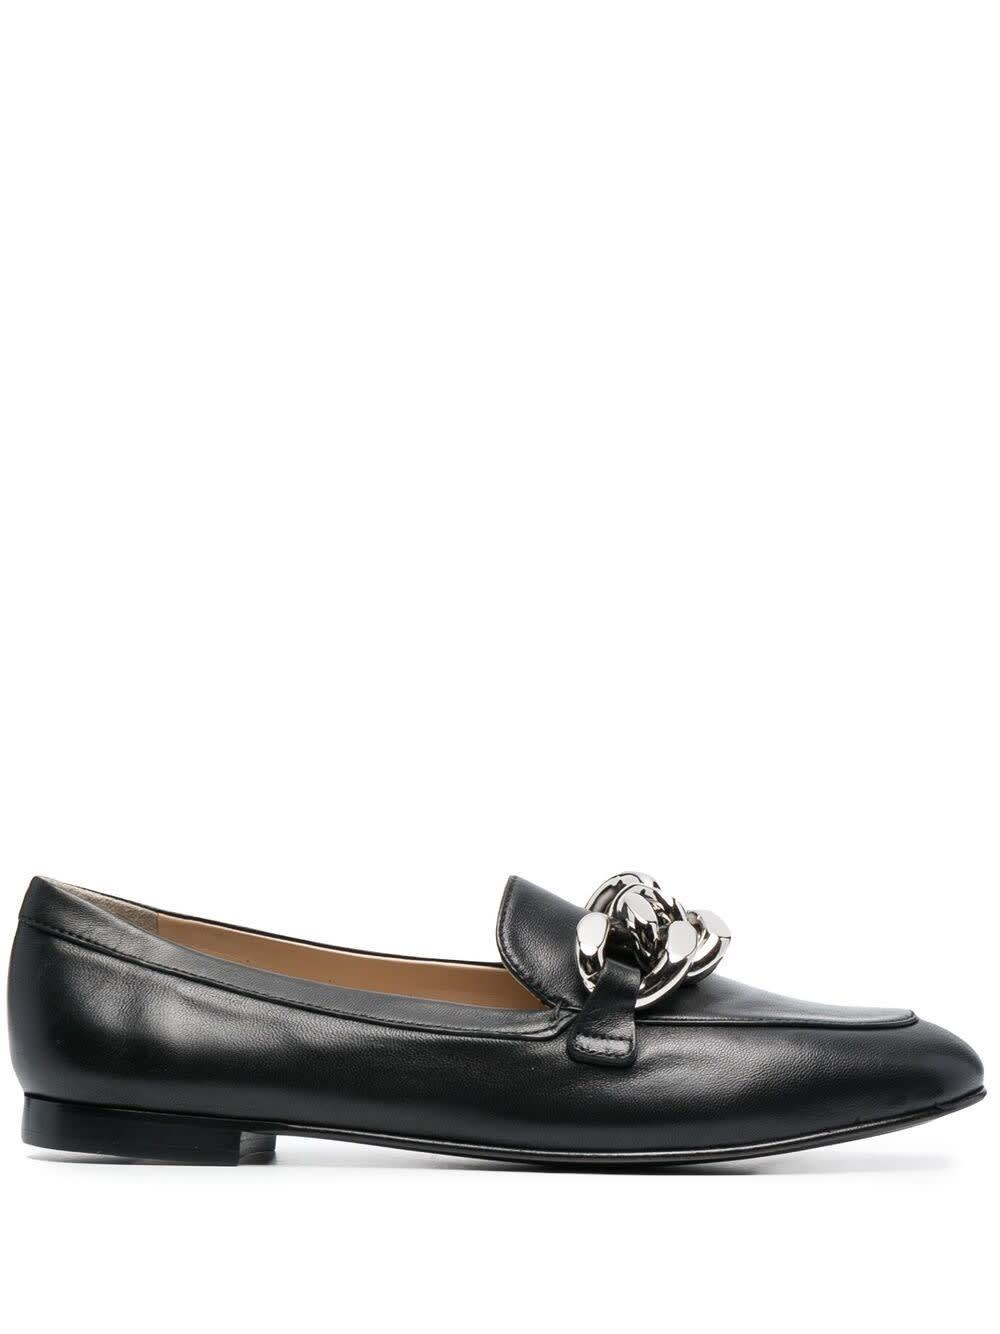 Casadei Leather Loafers With Chain Buckle